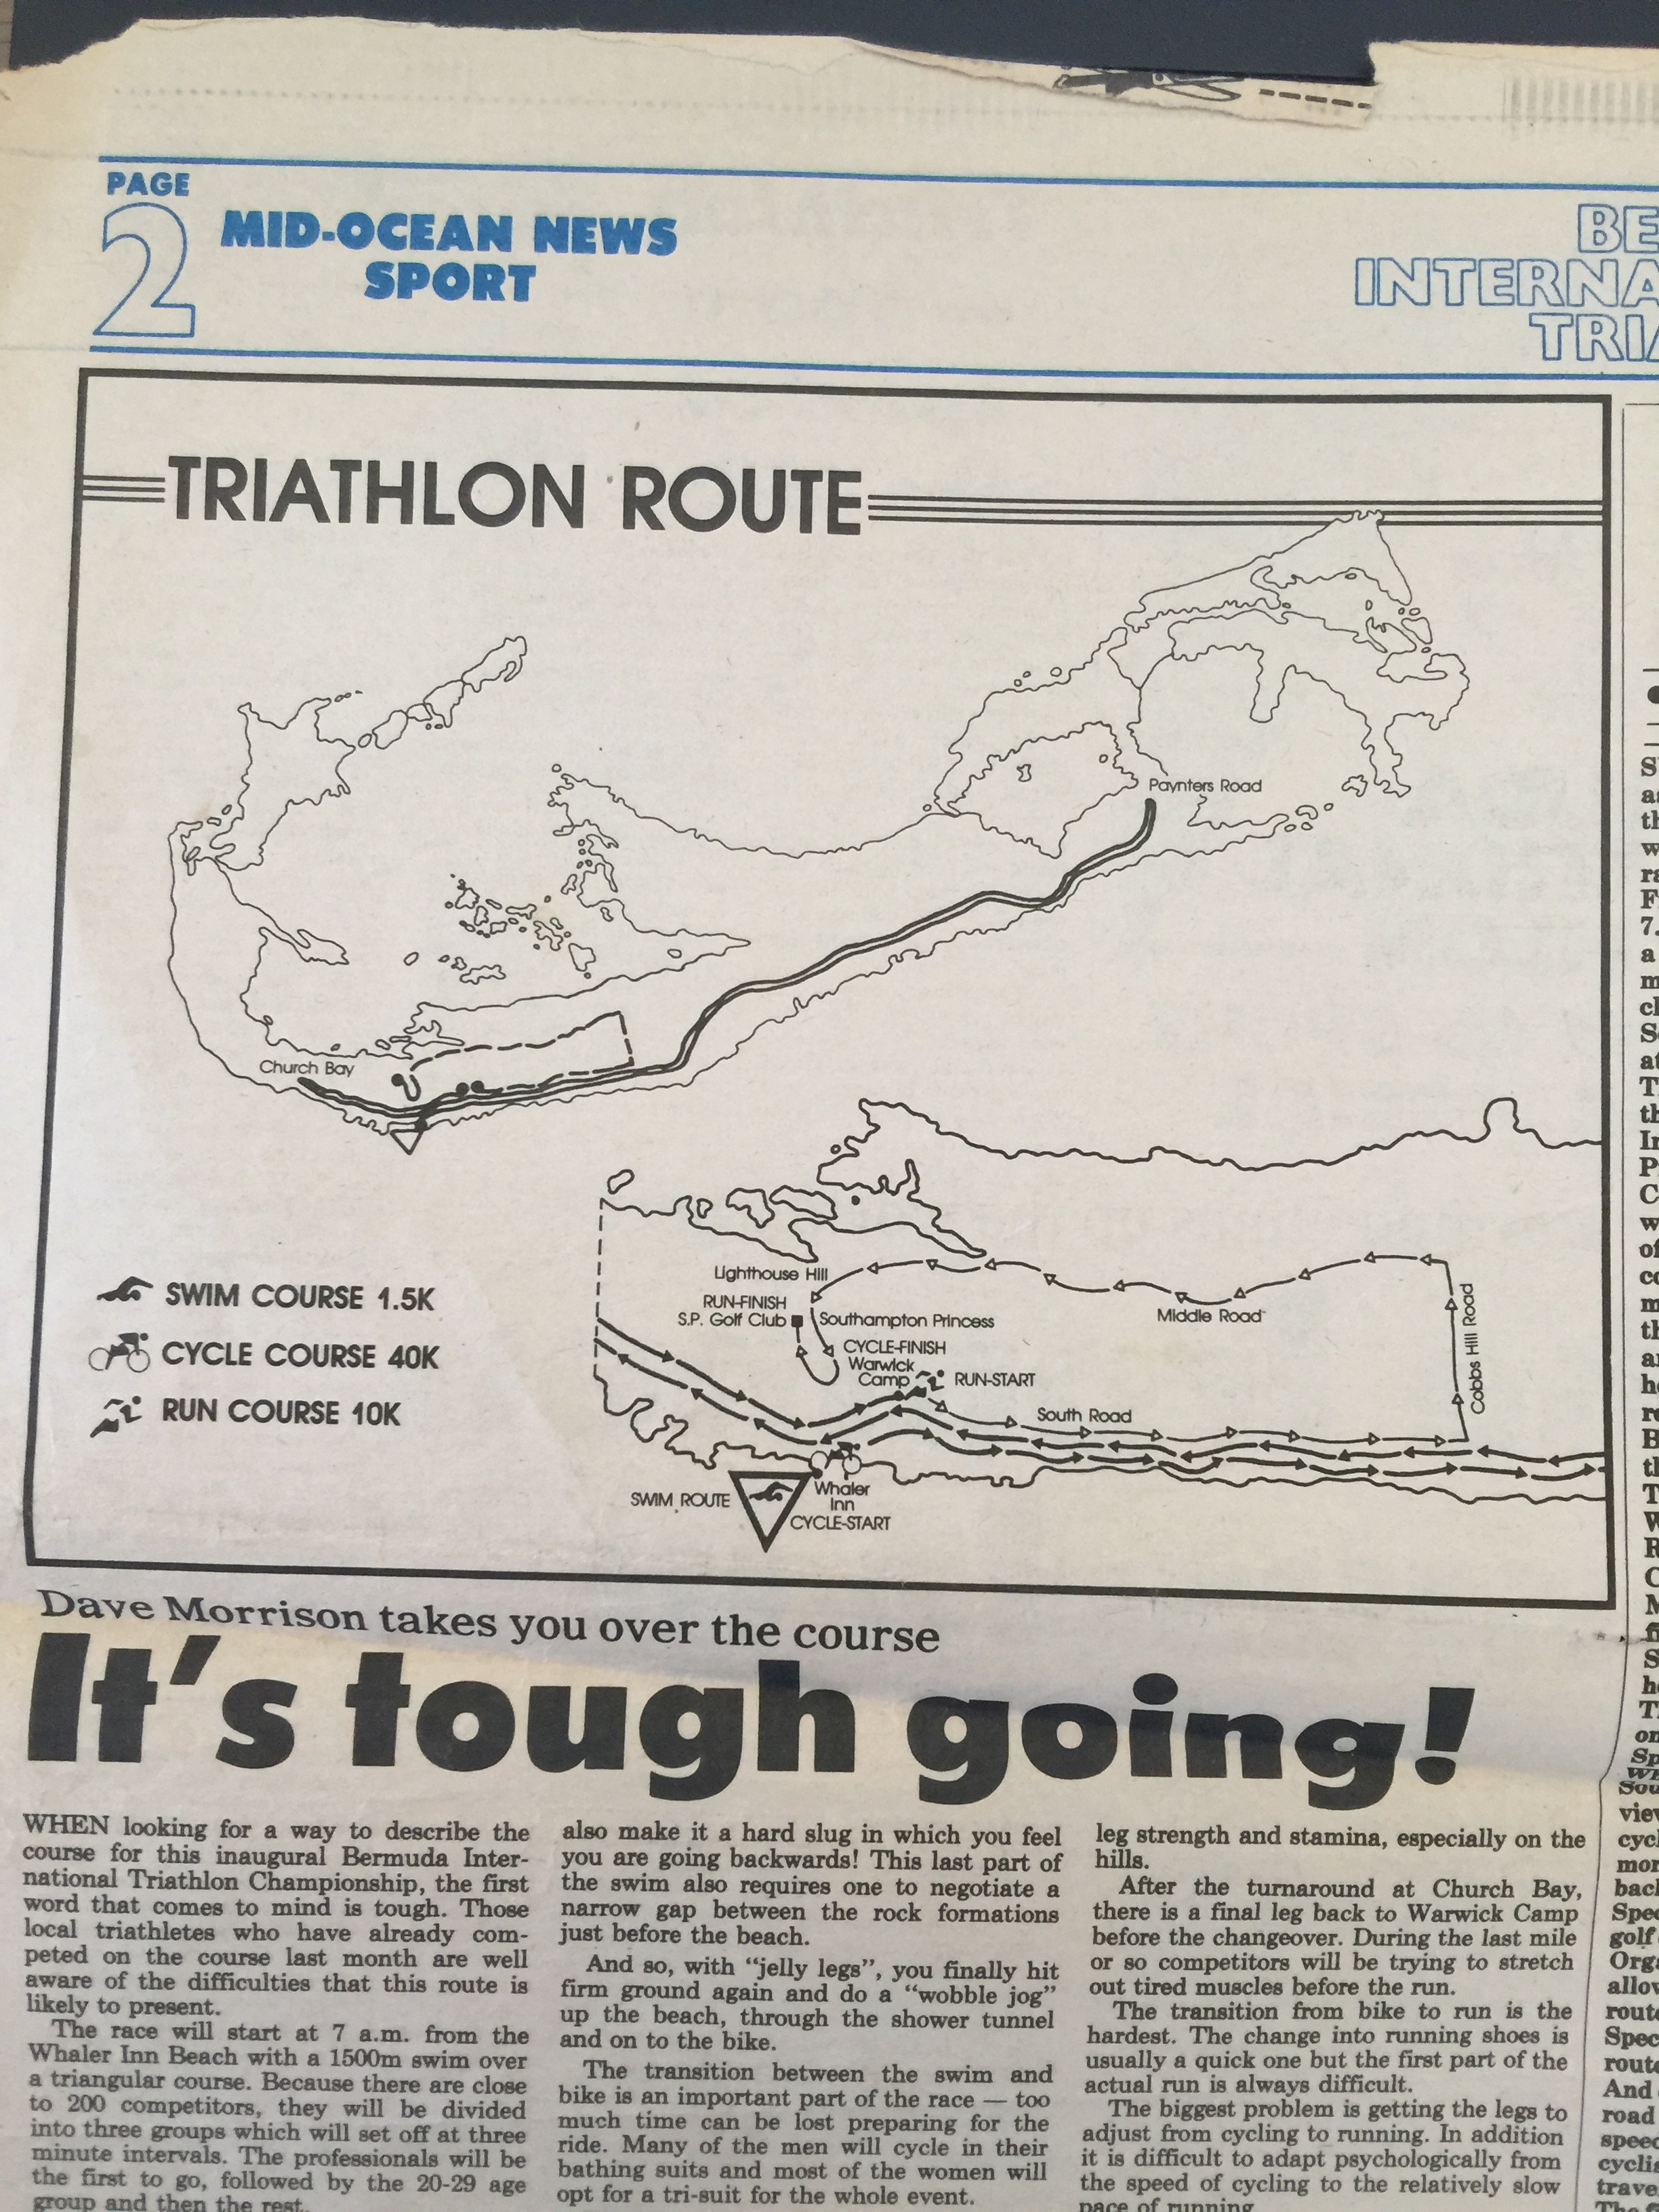 Bda Intl Triathlon 2017 route map.JPG